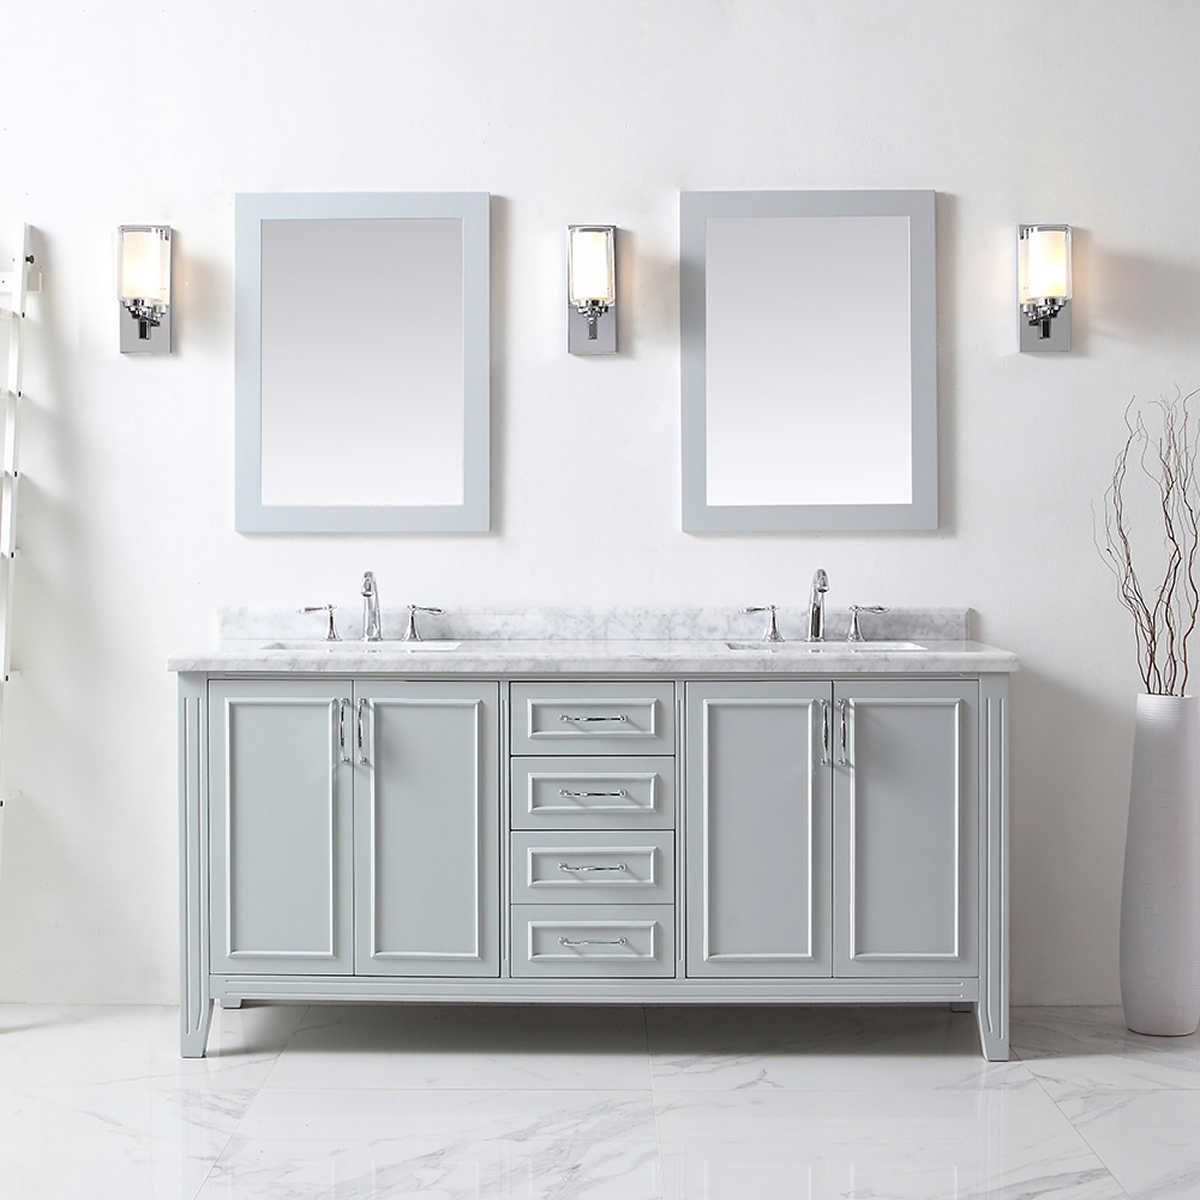 Bathroom cabinets ottawa - Double Vanity With Mirrors